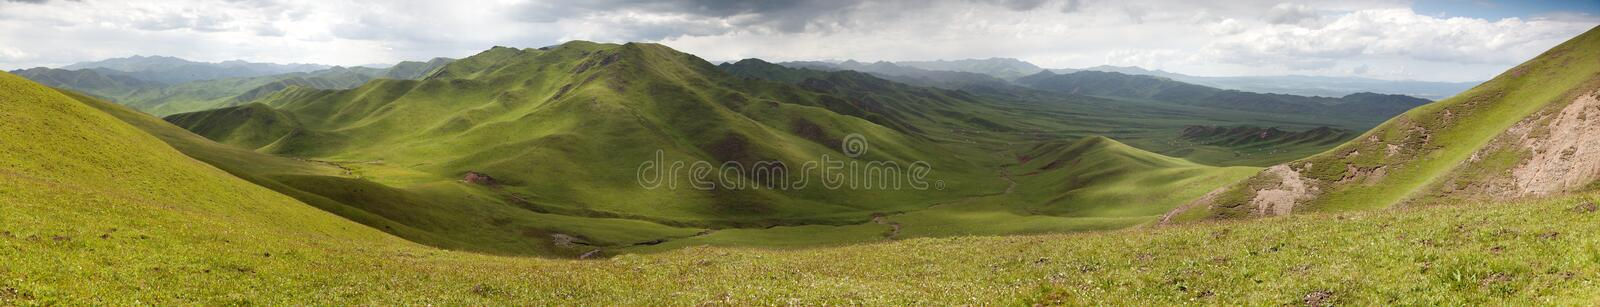 Green mountains - East Tibet - Qinghai province - China. Panaramic view of green mountains - East Tibet - Qinghai province - China stock image